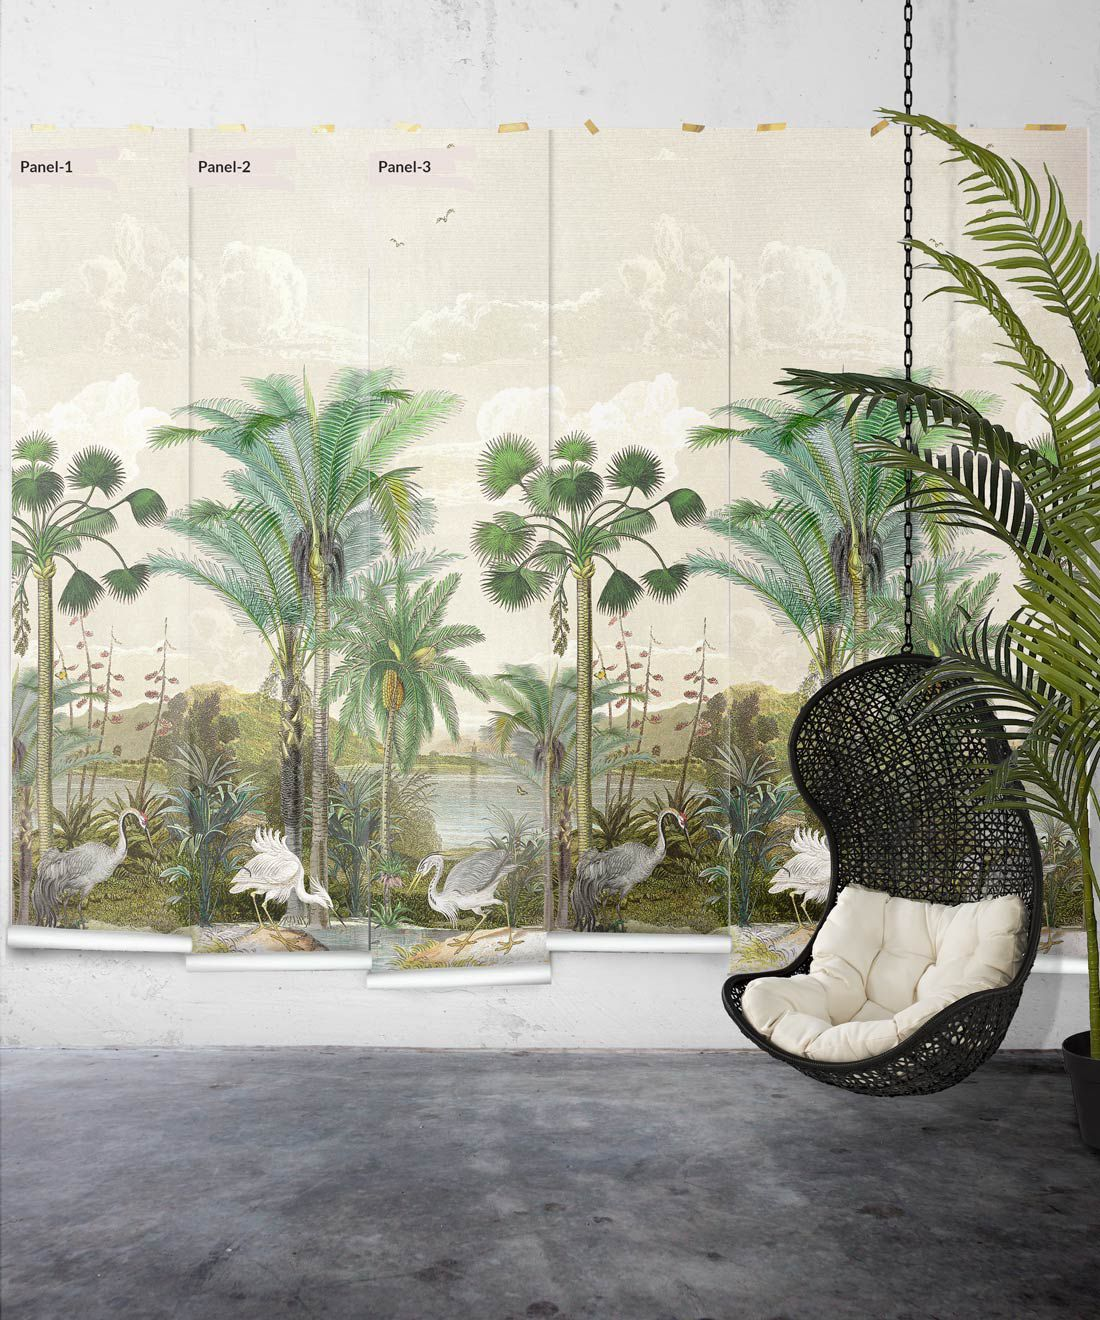 Indian Subcontinent Wallpaper Mural •Bethany Linz • Palm Tree Mural • Beige • Panels